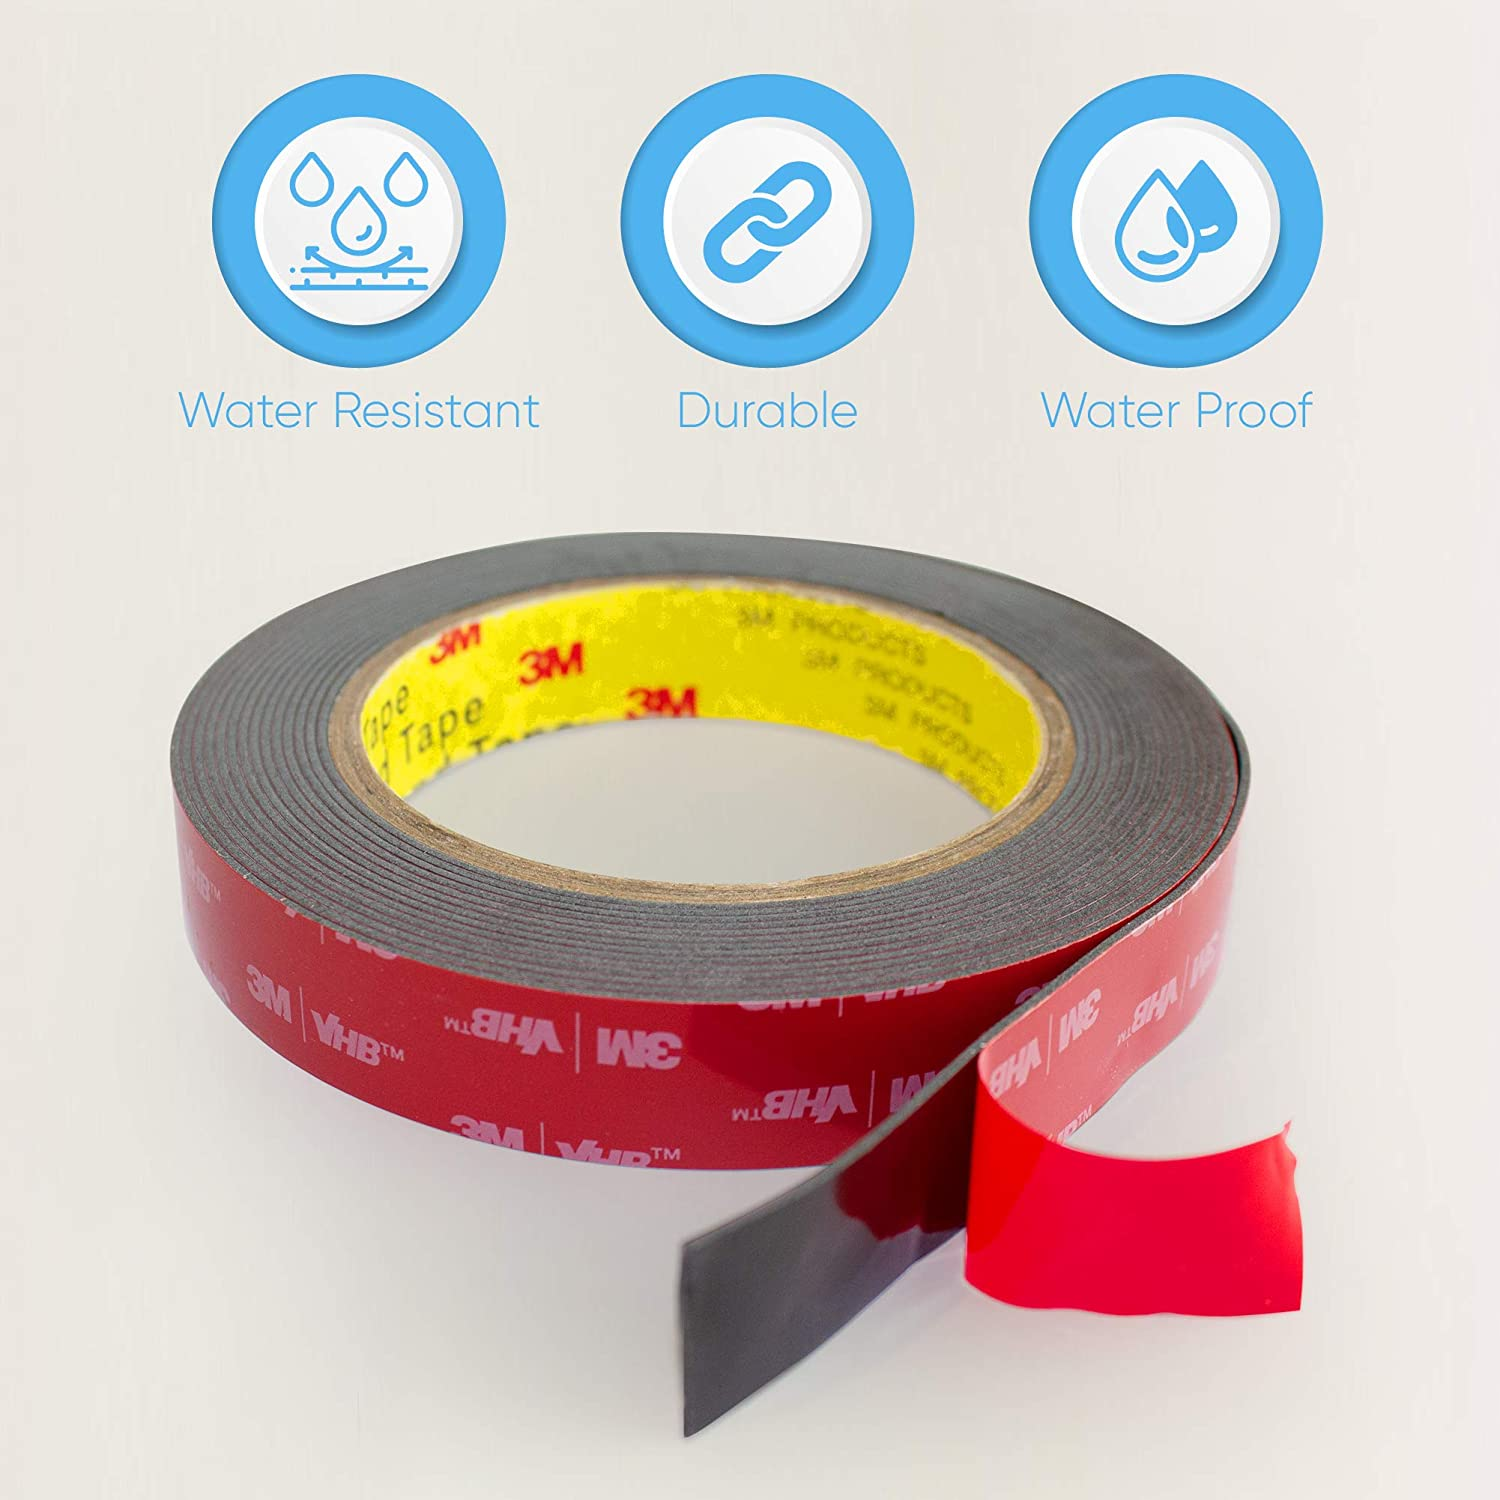 Super Strong Foam Tape for Outdoor and Indoor 3M Double Sided Tape HPP Heavy Duty Mounting Tape Converted from 3M VHB 5952, 0.25in x 15ft